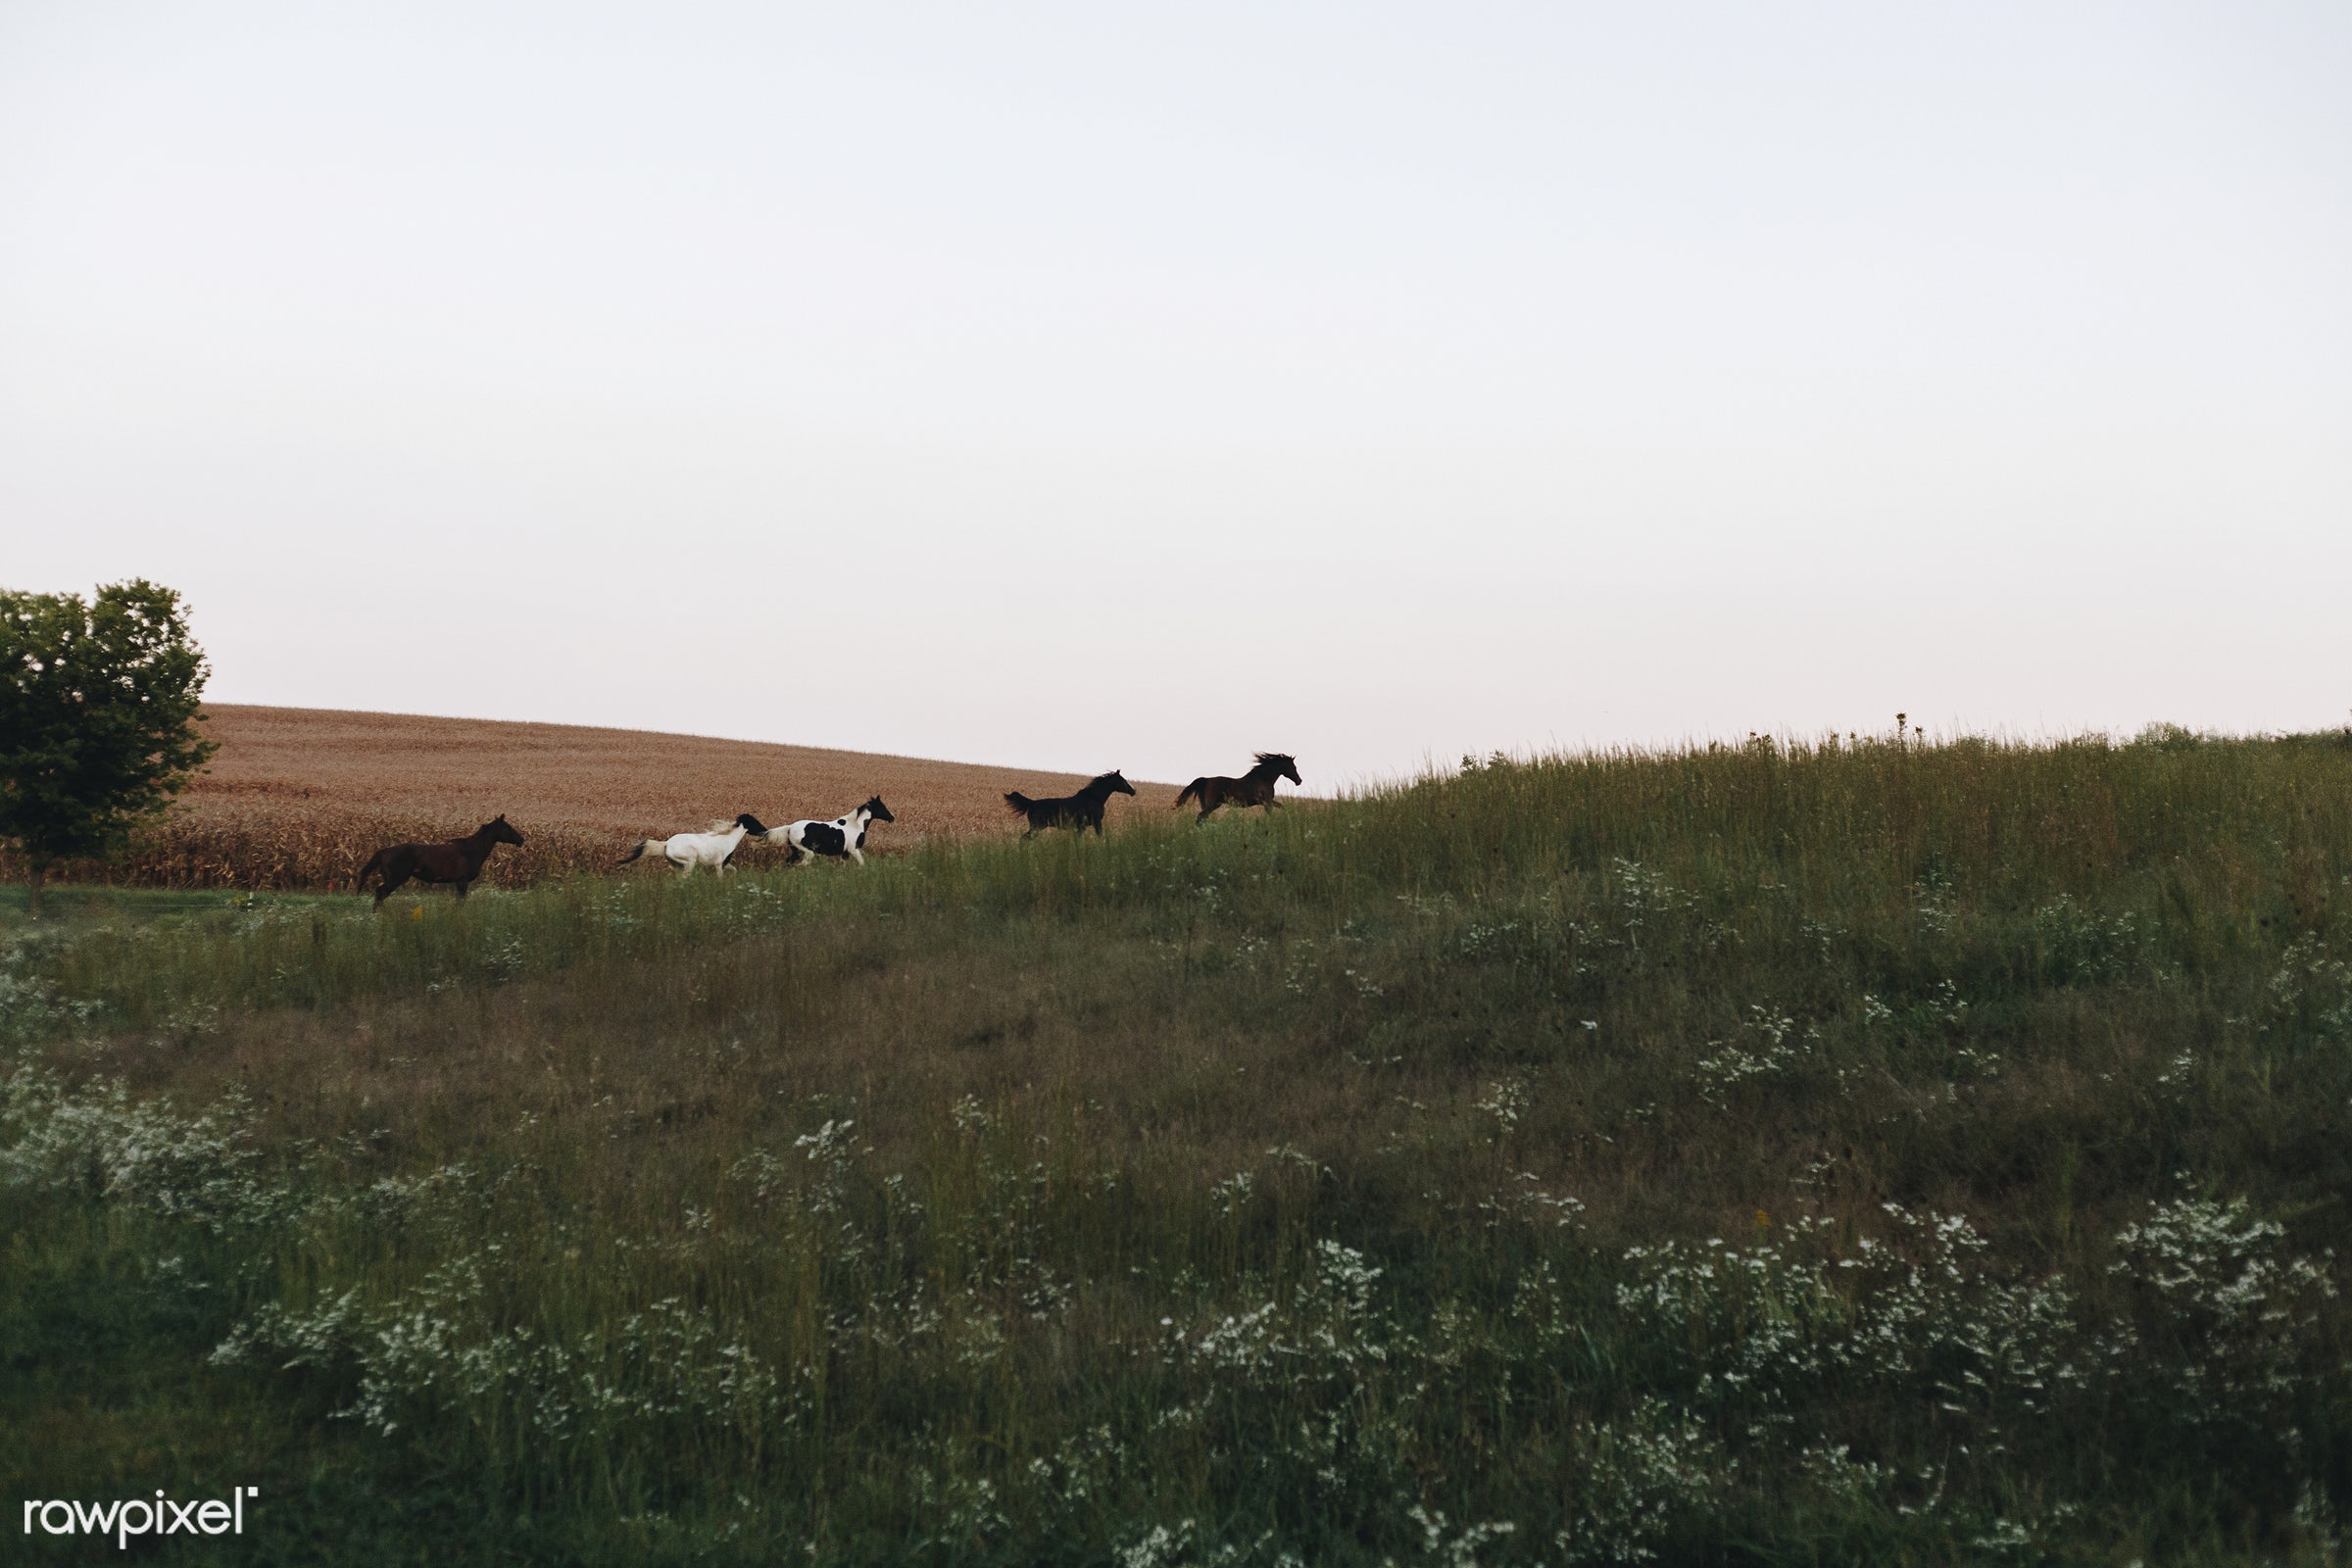 Horses running on a hill - animal, countryside, farm, field, grass, hills, horses, landscape, midwest, nature, outdoors,...